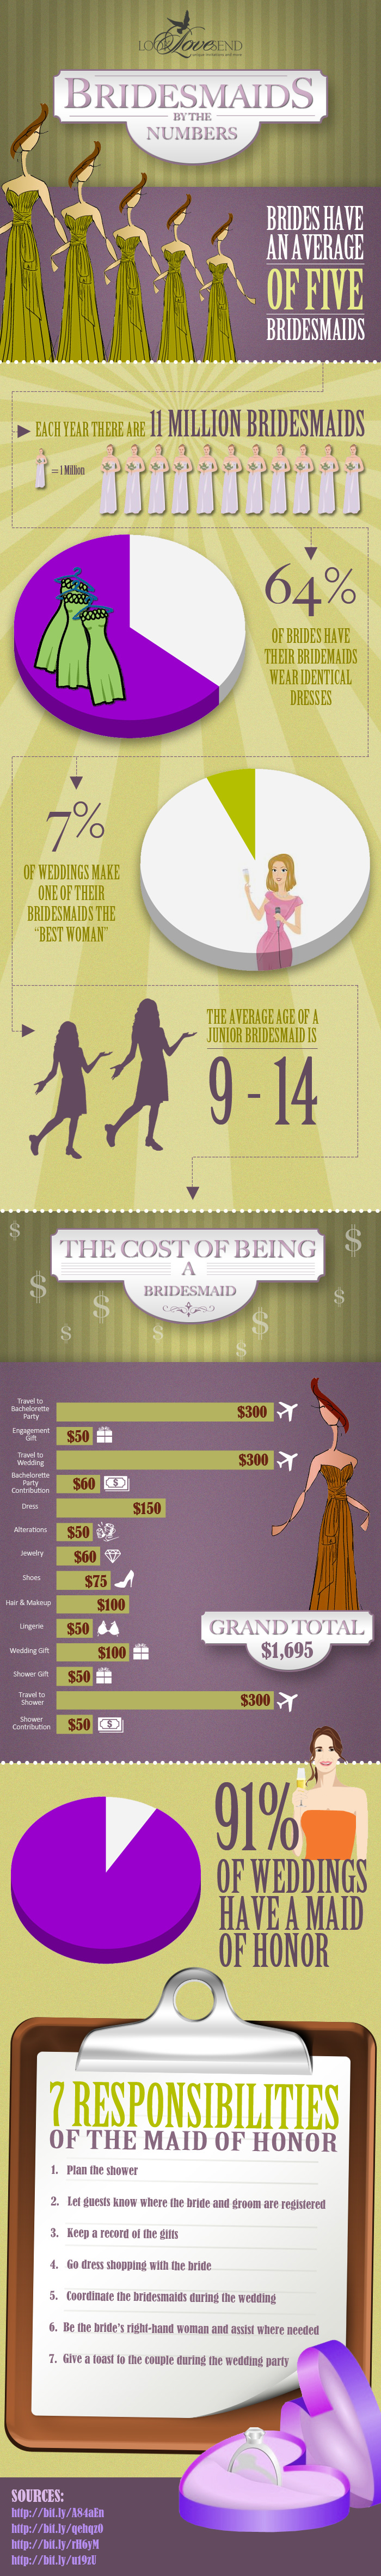 Bridesmaids Facts and Figures